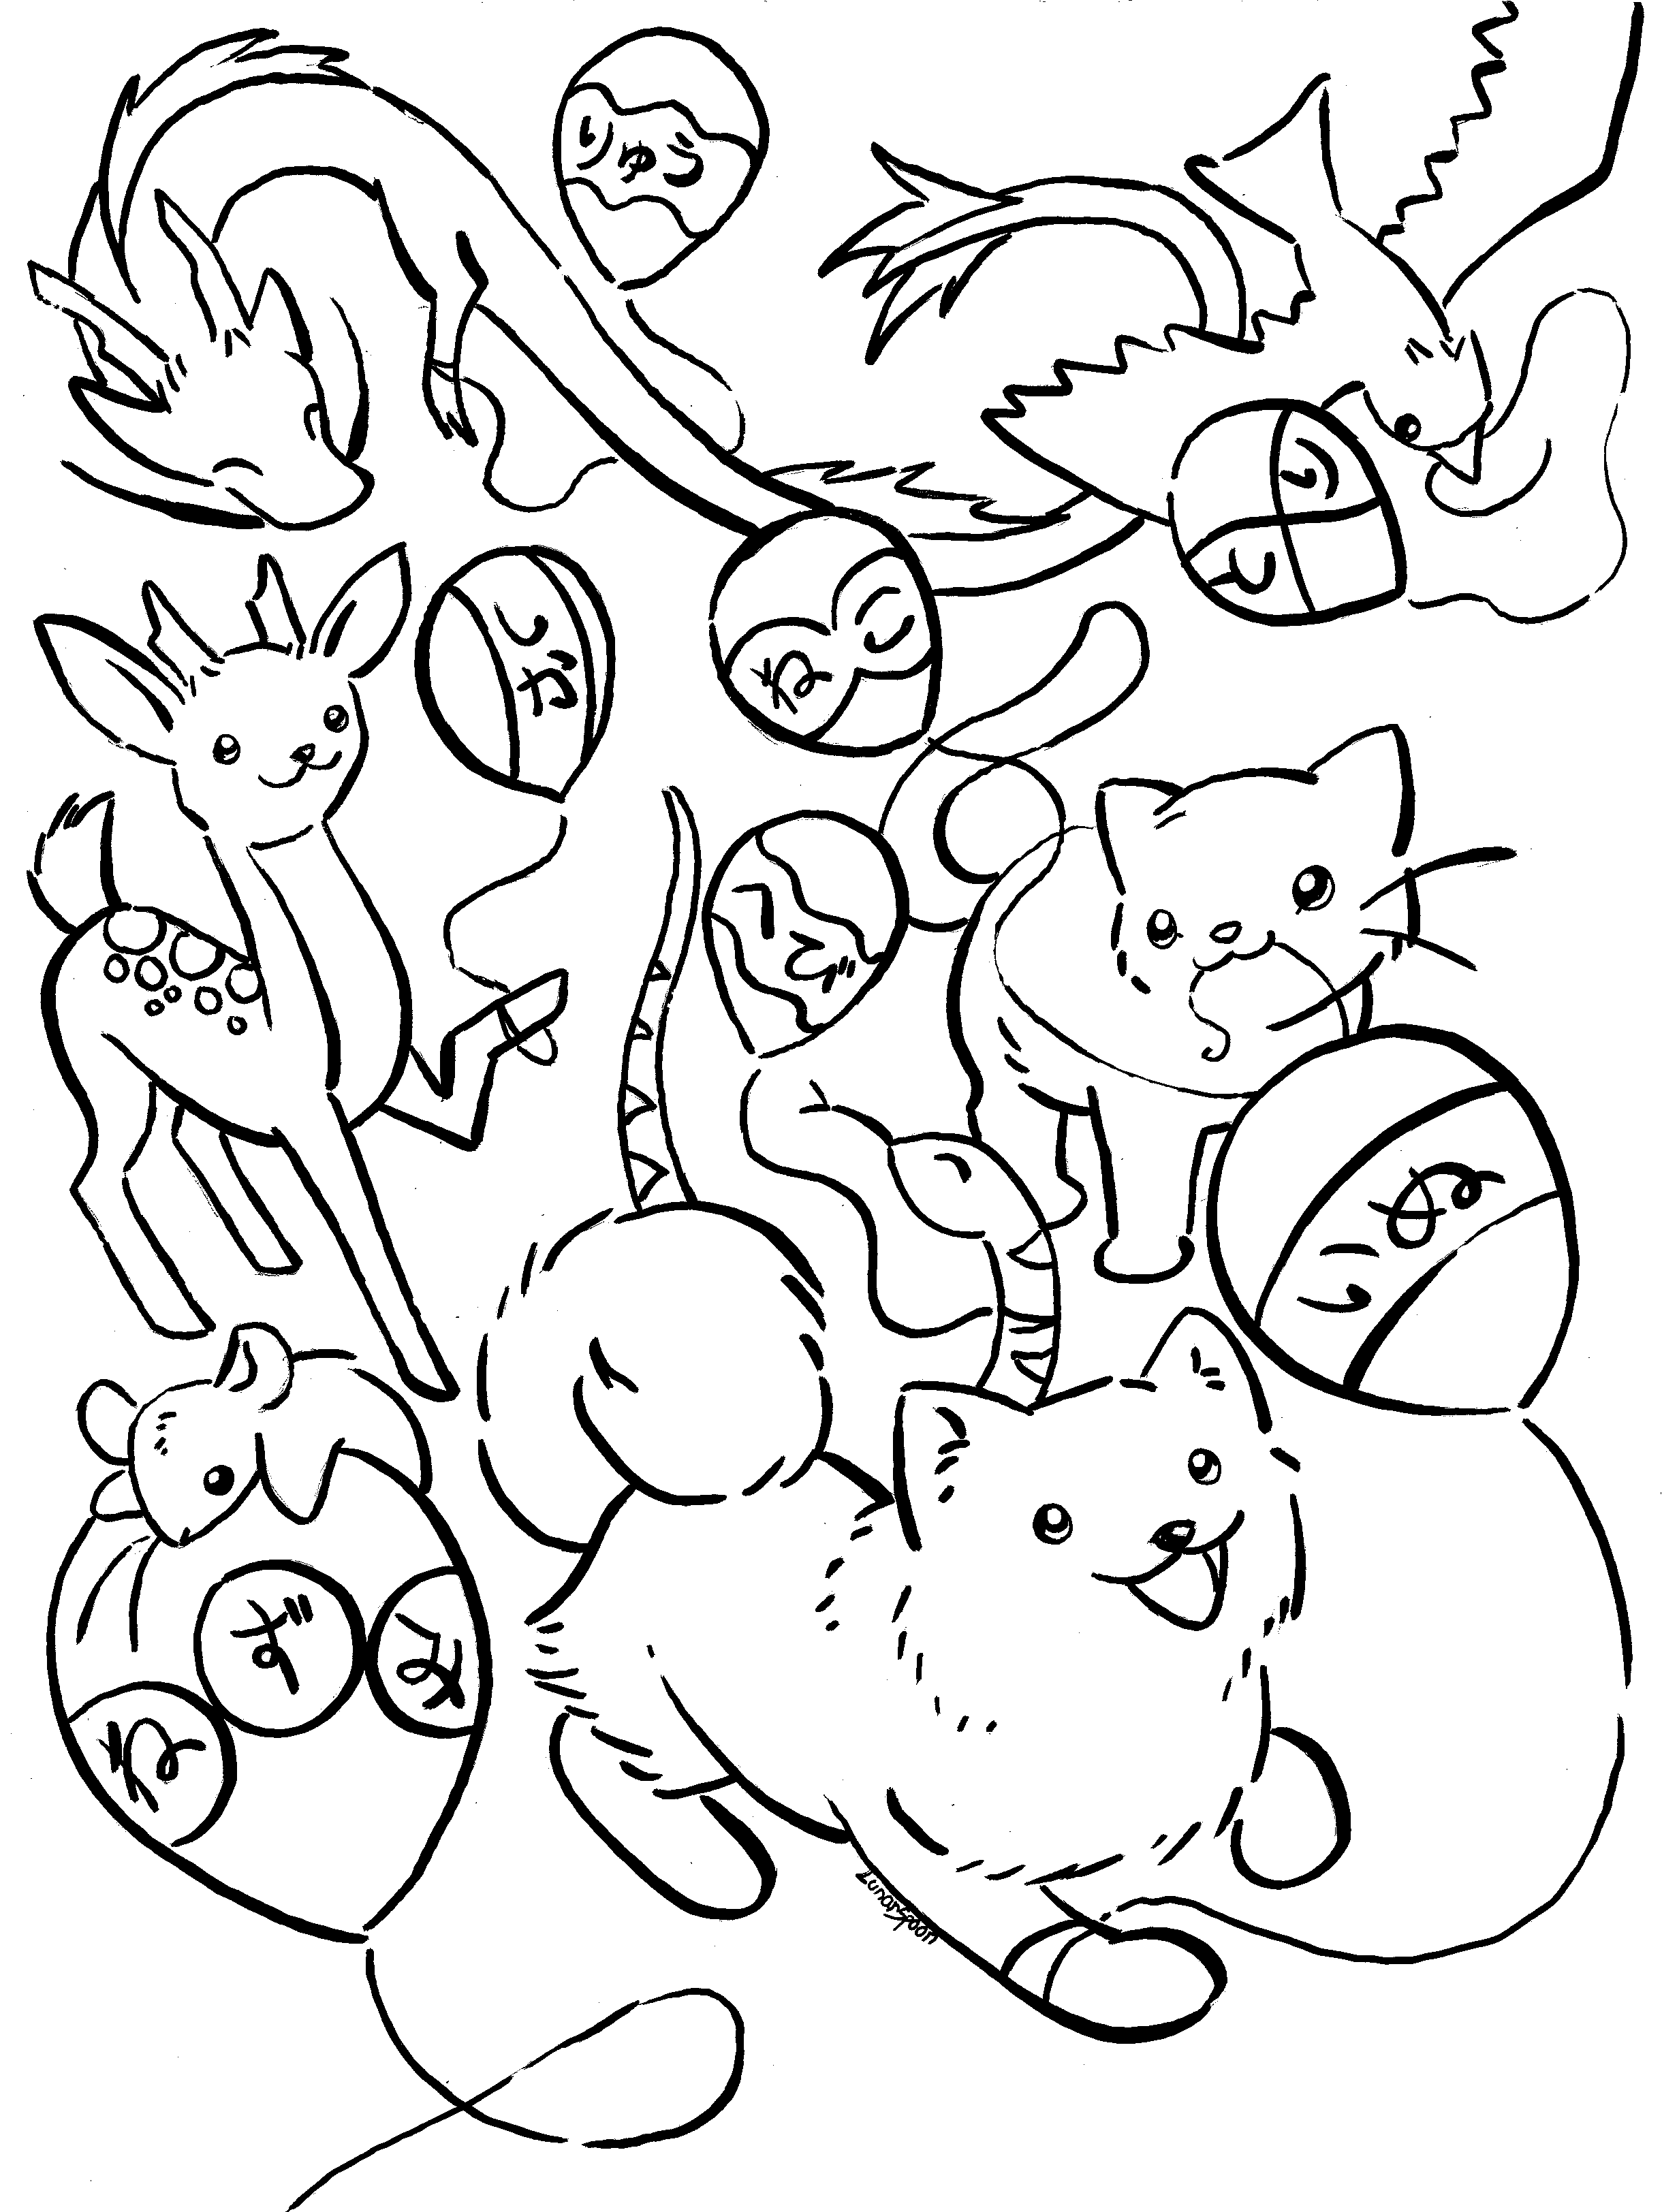 Japanese Animals Coloring Pages | Bgcentrum